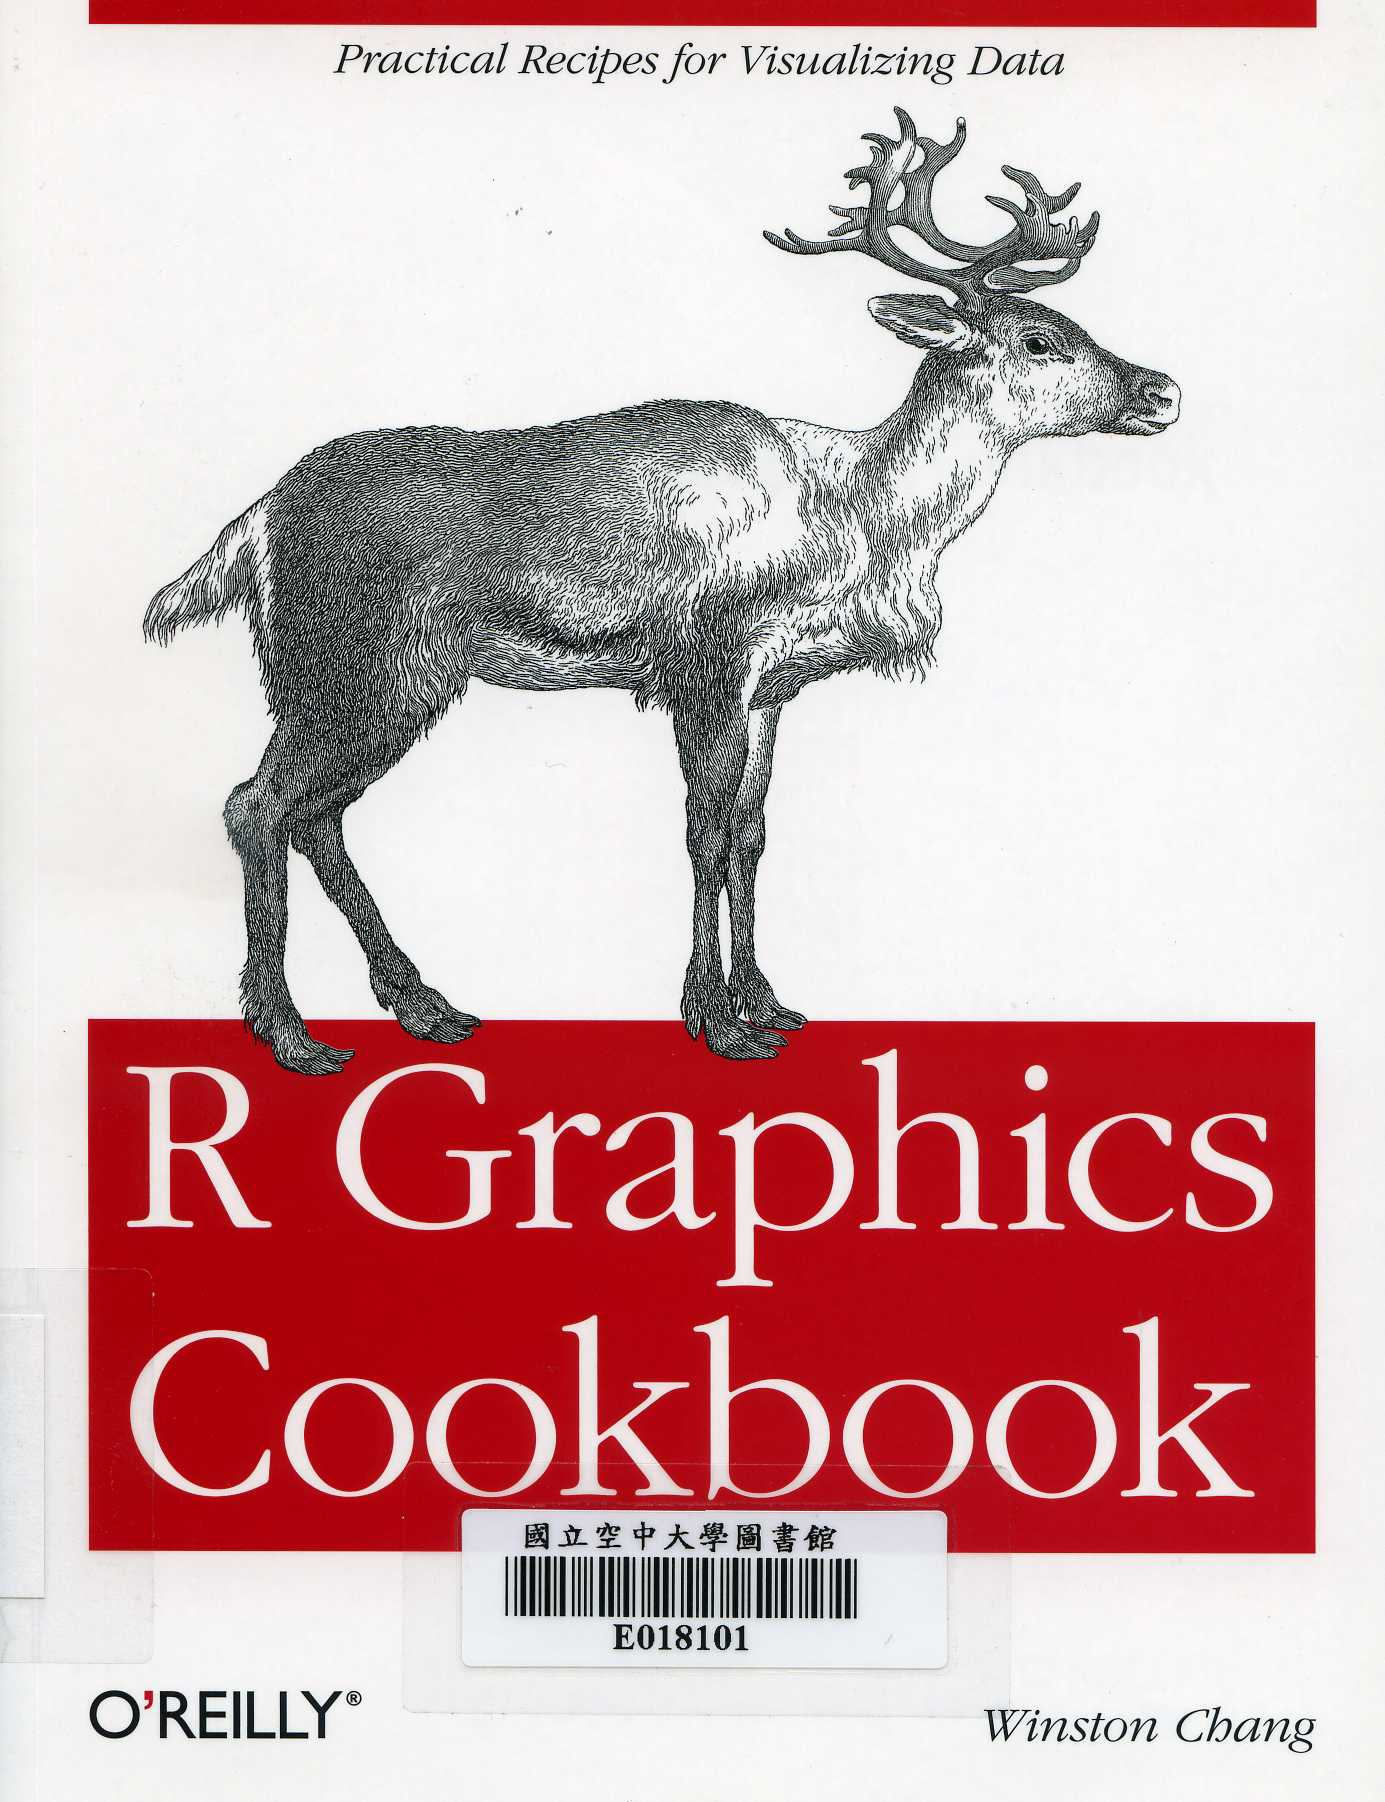 R graphics cookbook /